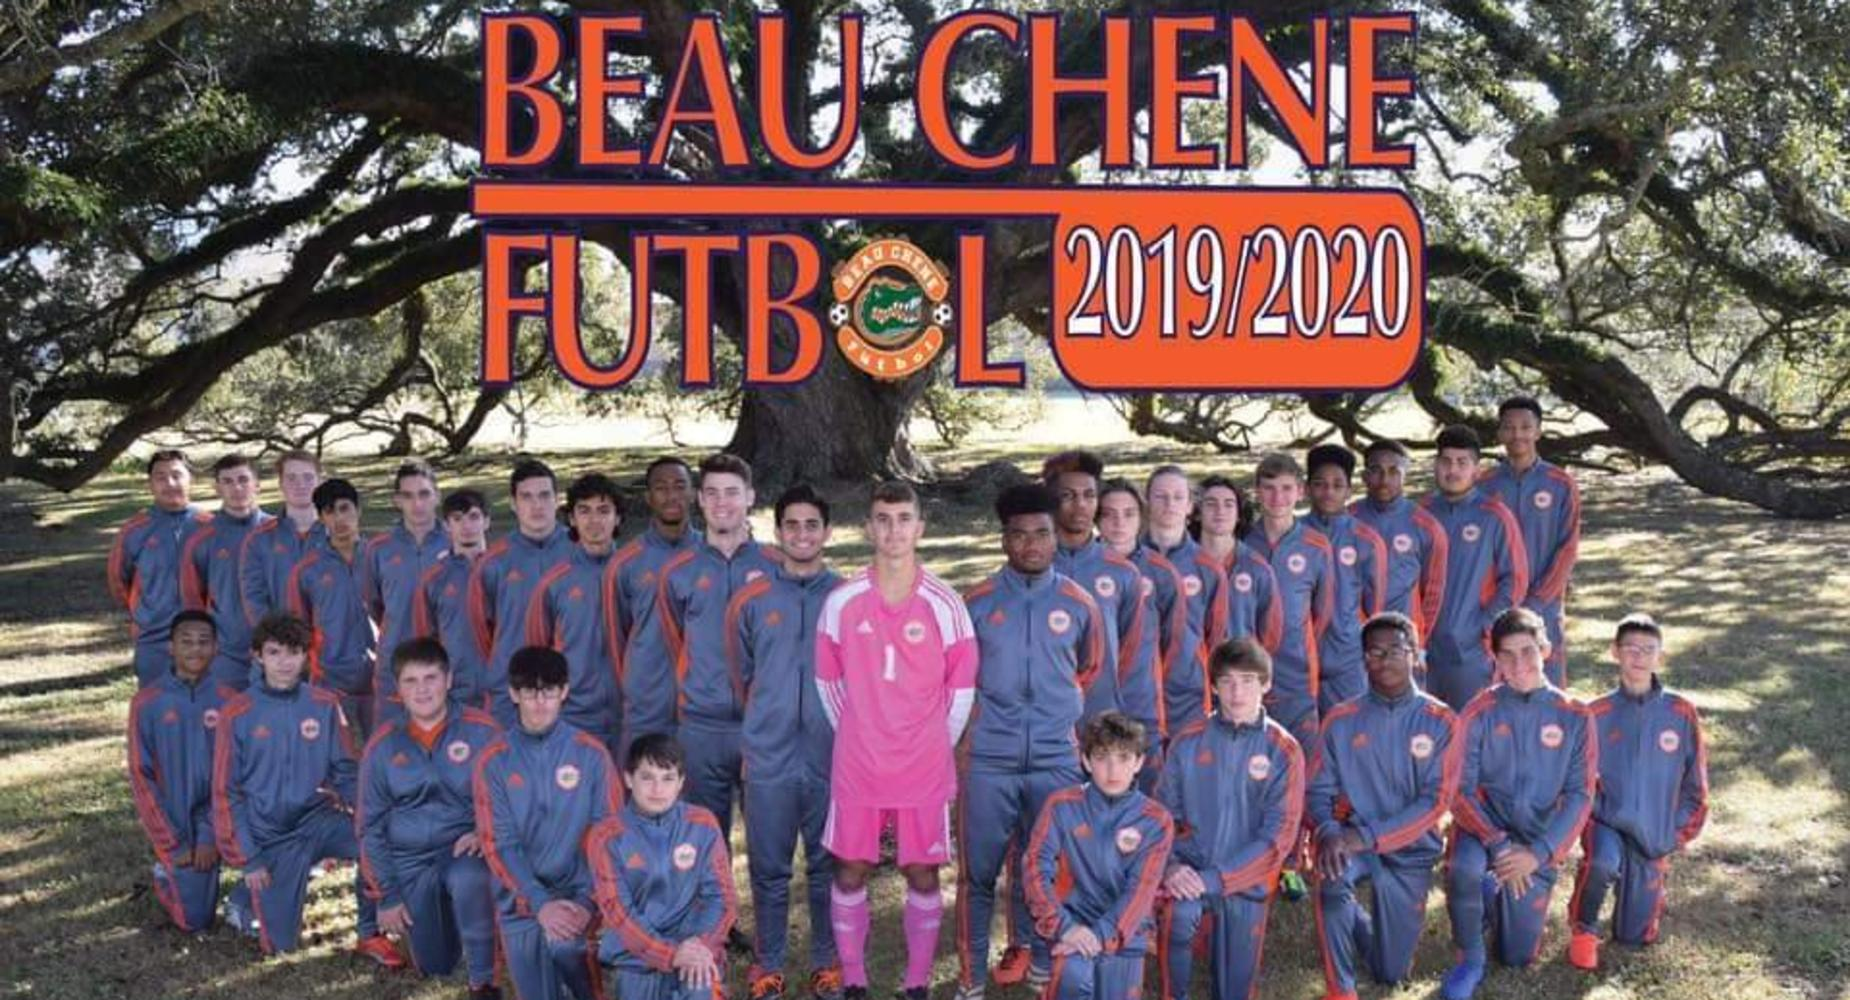 Beau Chene High School Soccer Team ~ 2019-2020